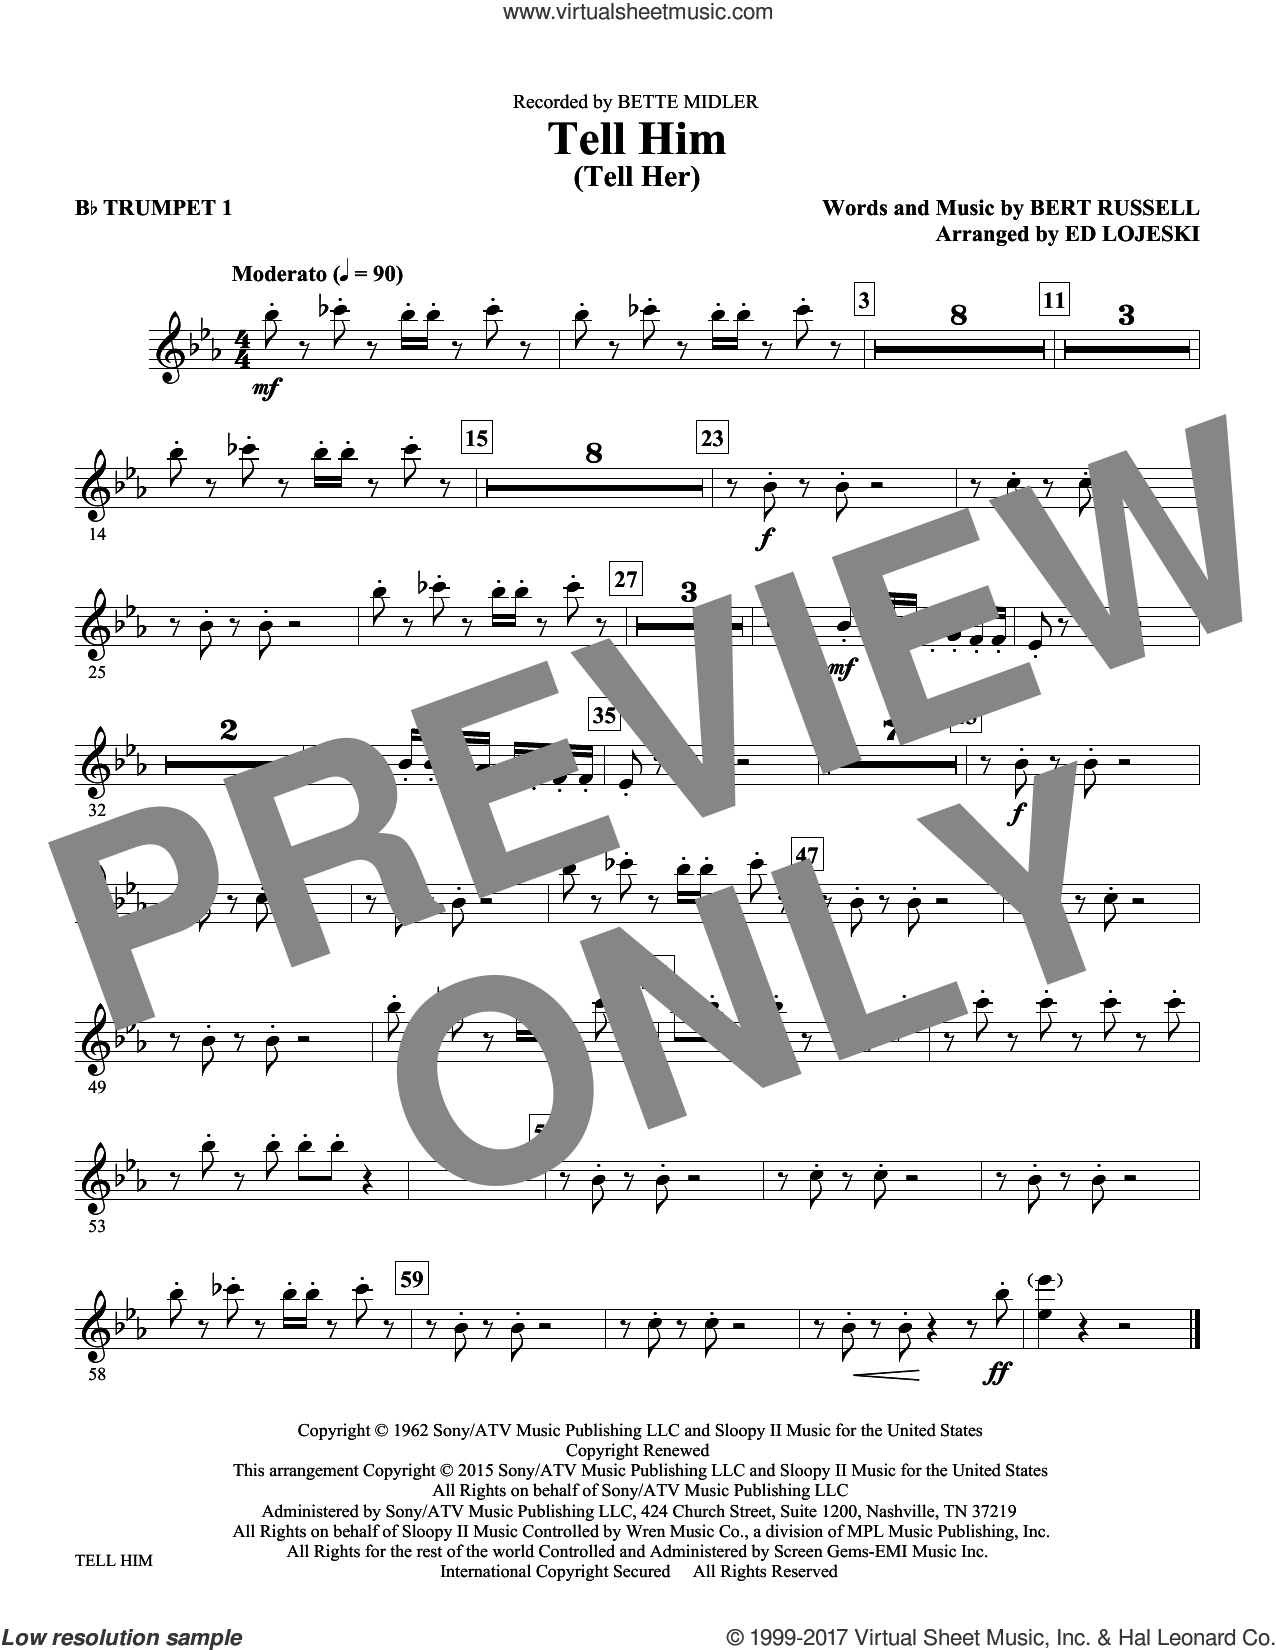 Tell Him (complete set of parts) sheet music for orchestra/band by Ed Lojeski, Bert Russell and The Exciters, intermediate skill level